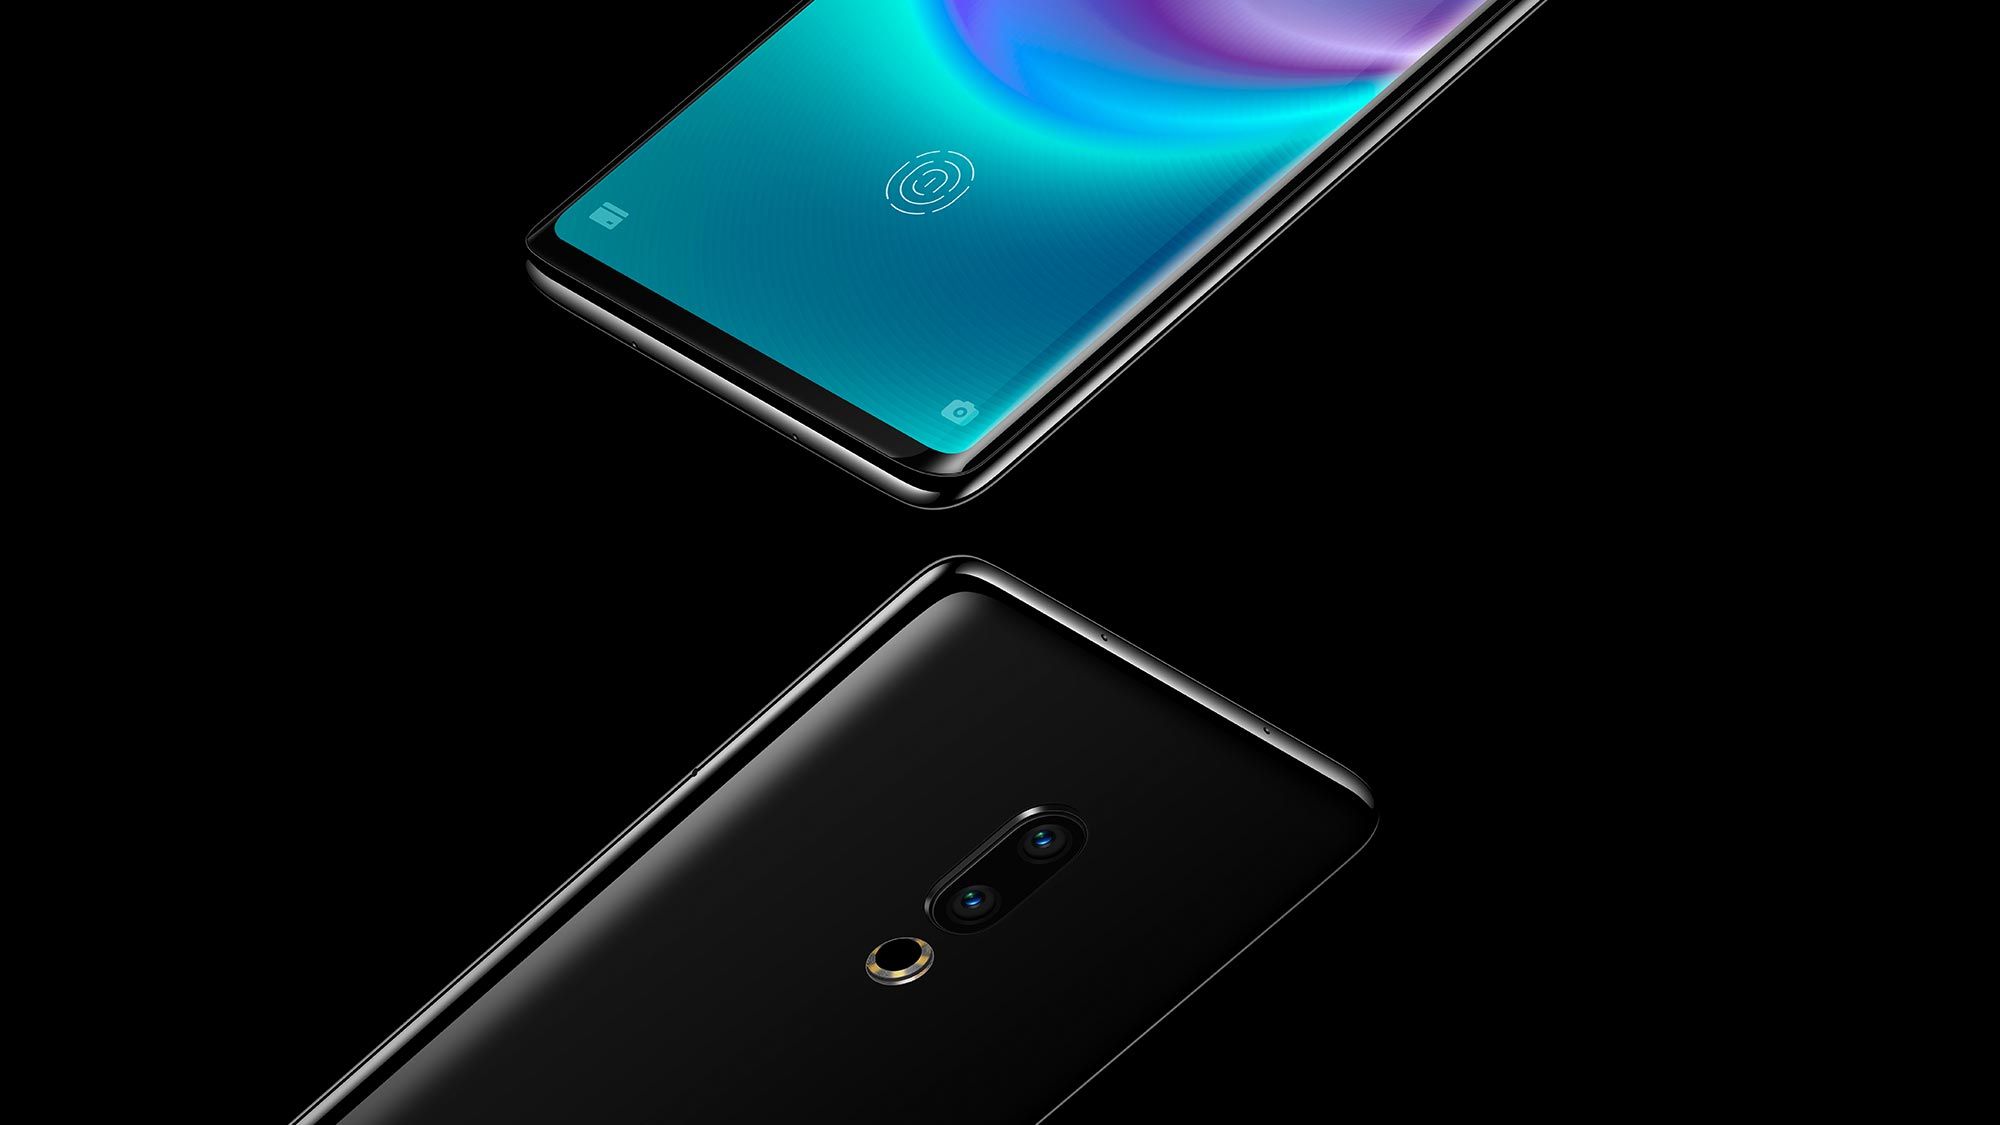 Not Apple, but Meizu made the first smartphone without connectors, sockets and buttons